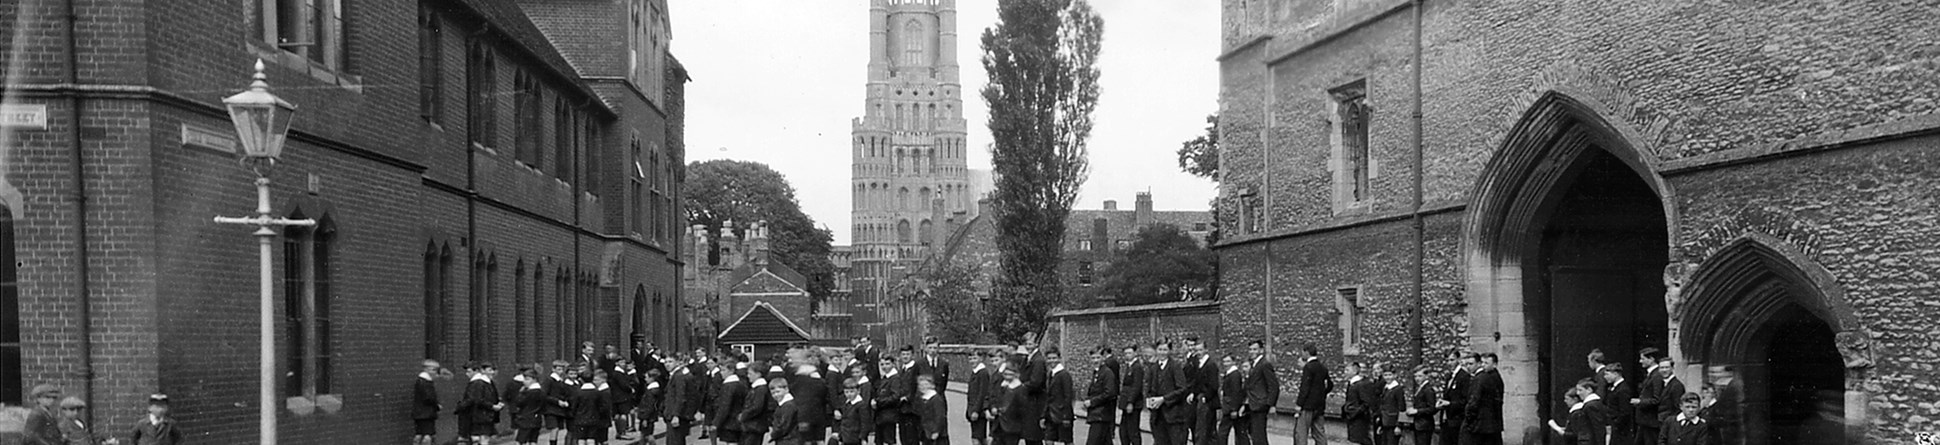 Archive black and white photograph of a group of schoolboys in the street between a brick building and a flint and stone medieval gatehouse, with a church tower in the background.